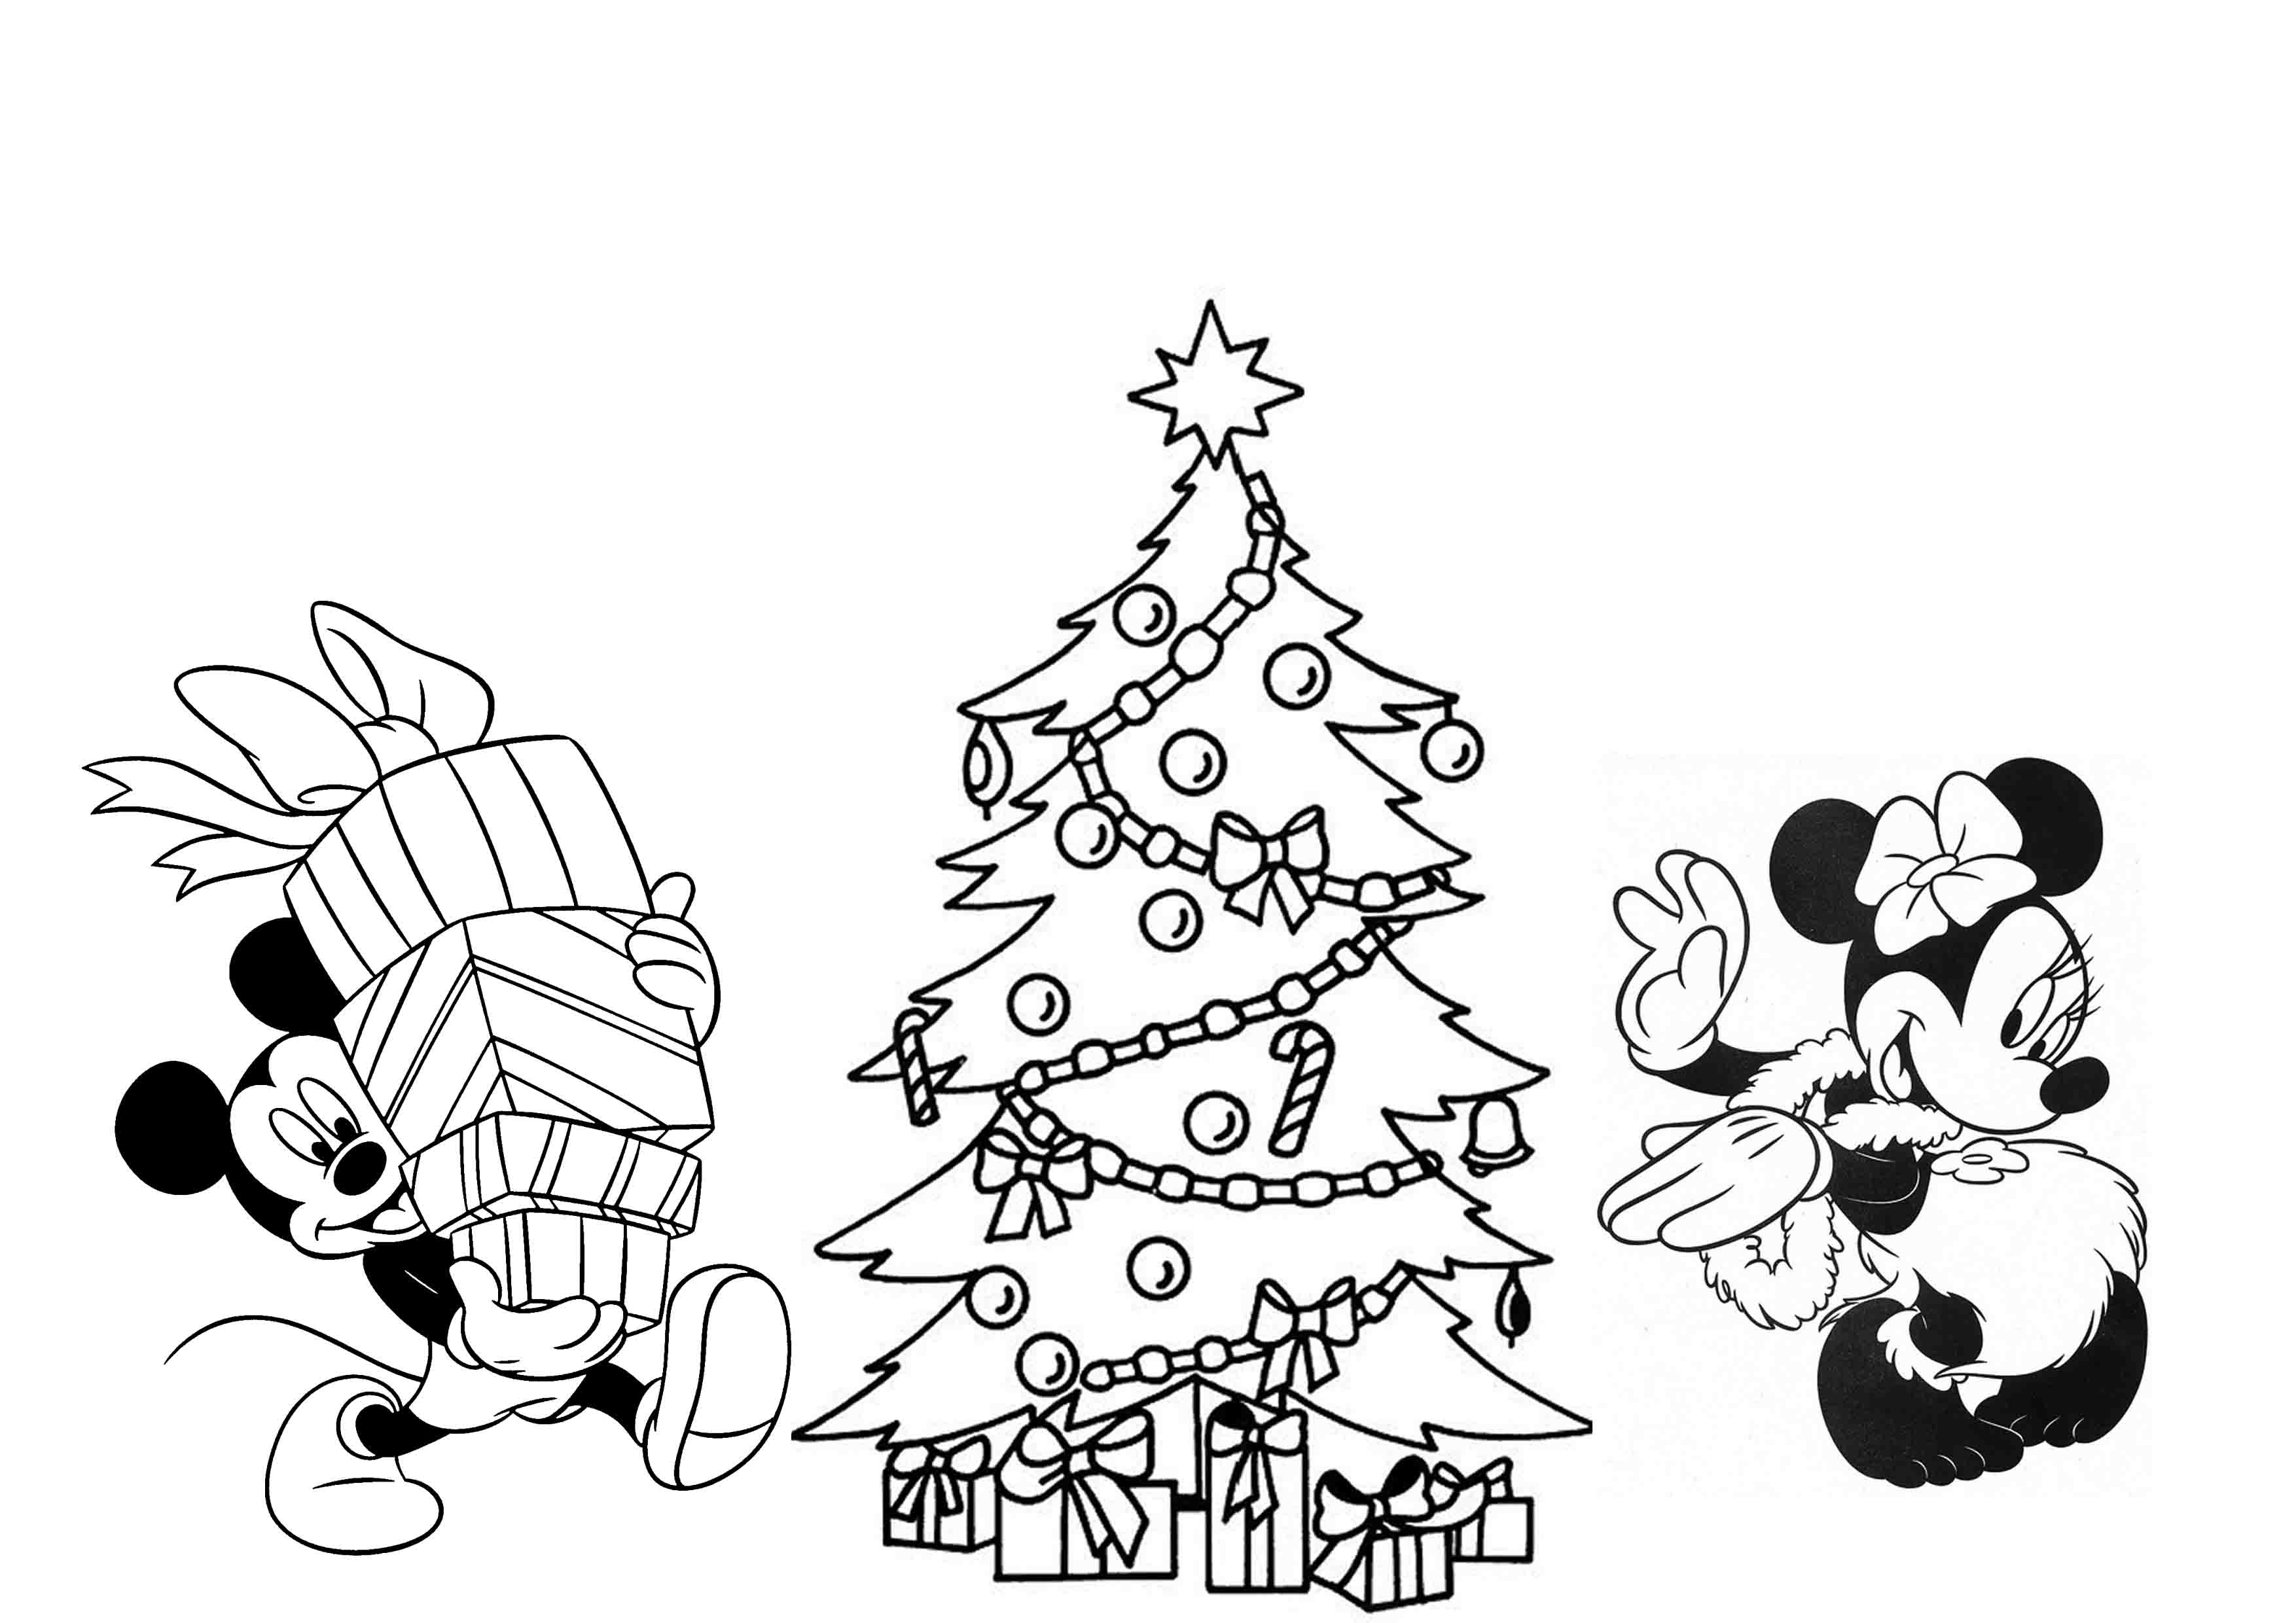 Merry Christmas Colouring Pages Printable With Cool Mickey Coloring Sheet Vitlt Free And Disney